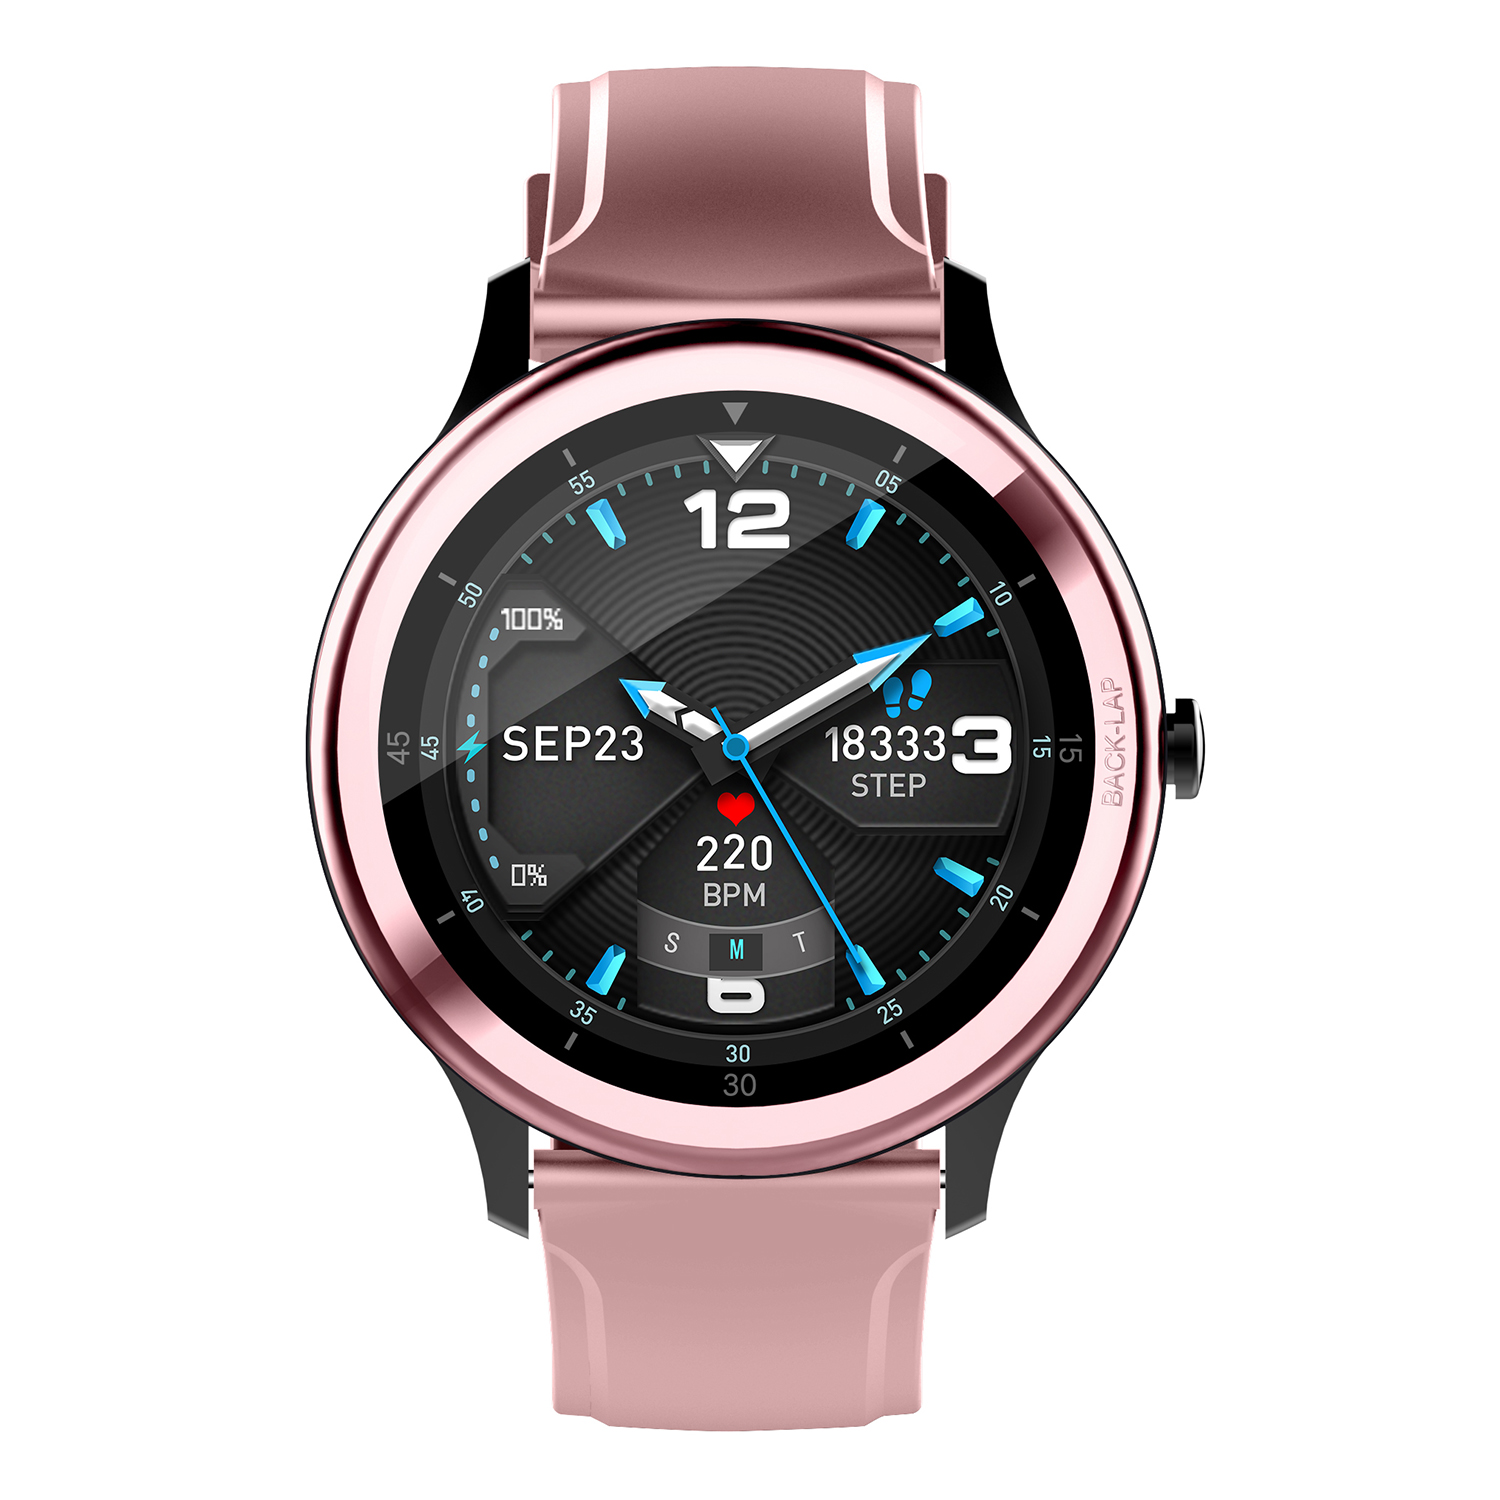 2020 Smart watch woman Fitness watches 24 sports modes Heart Rate Monitor Alarm Clock women's Smartwatch for iphone xiaomi honor